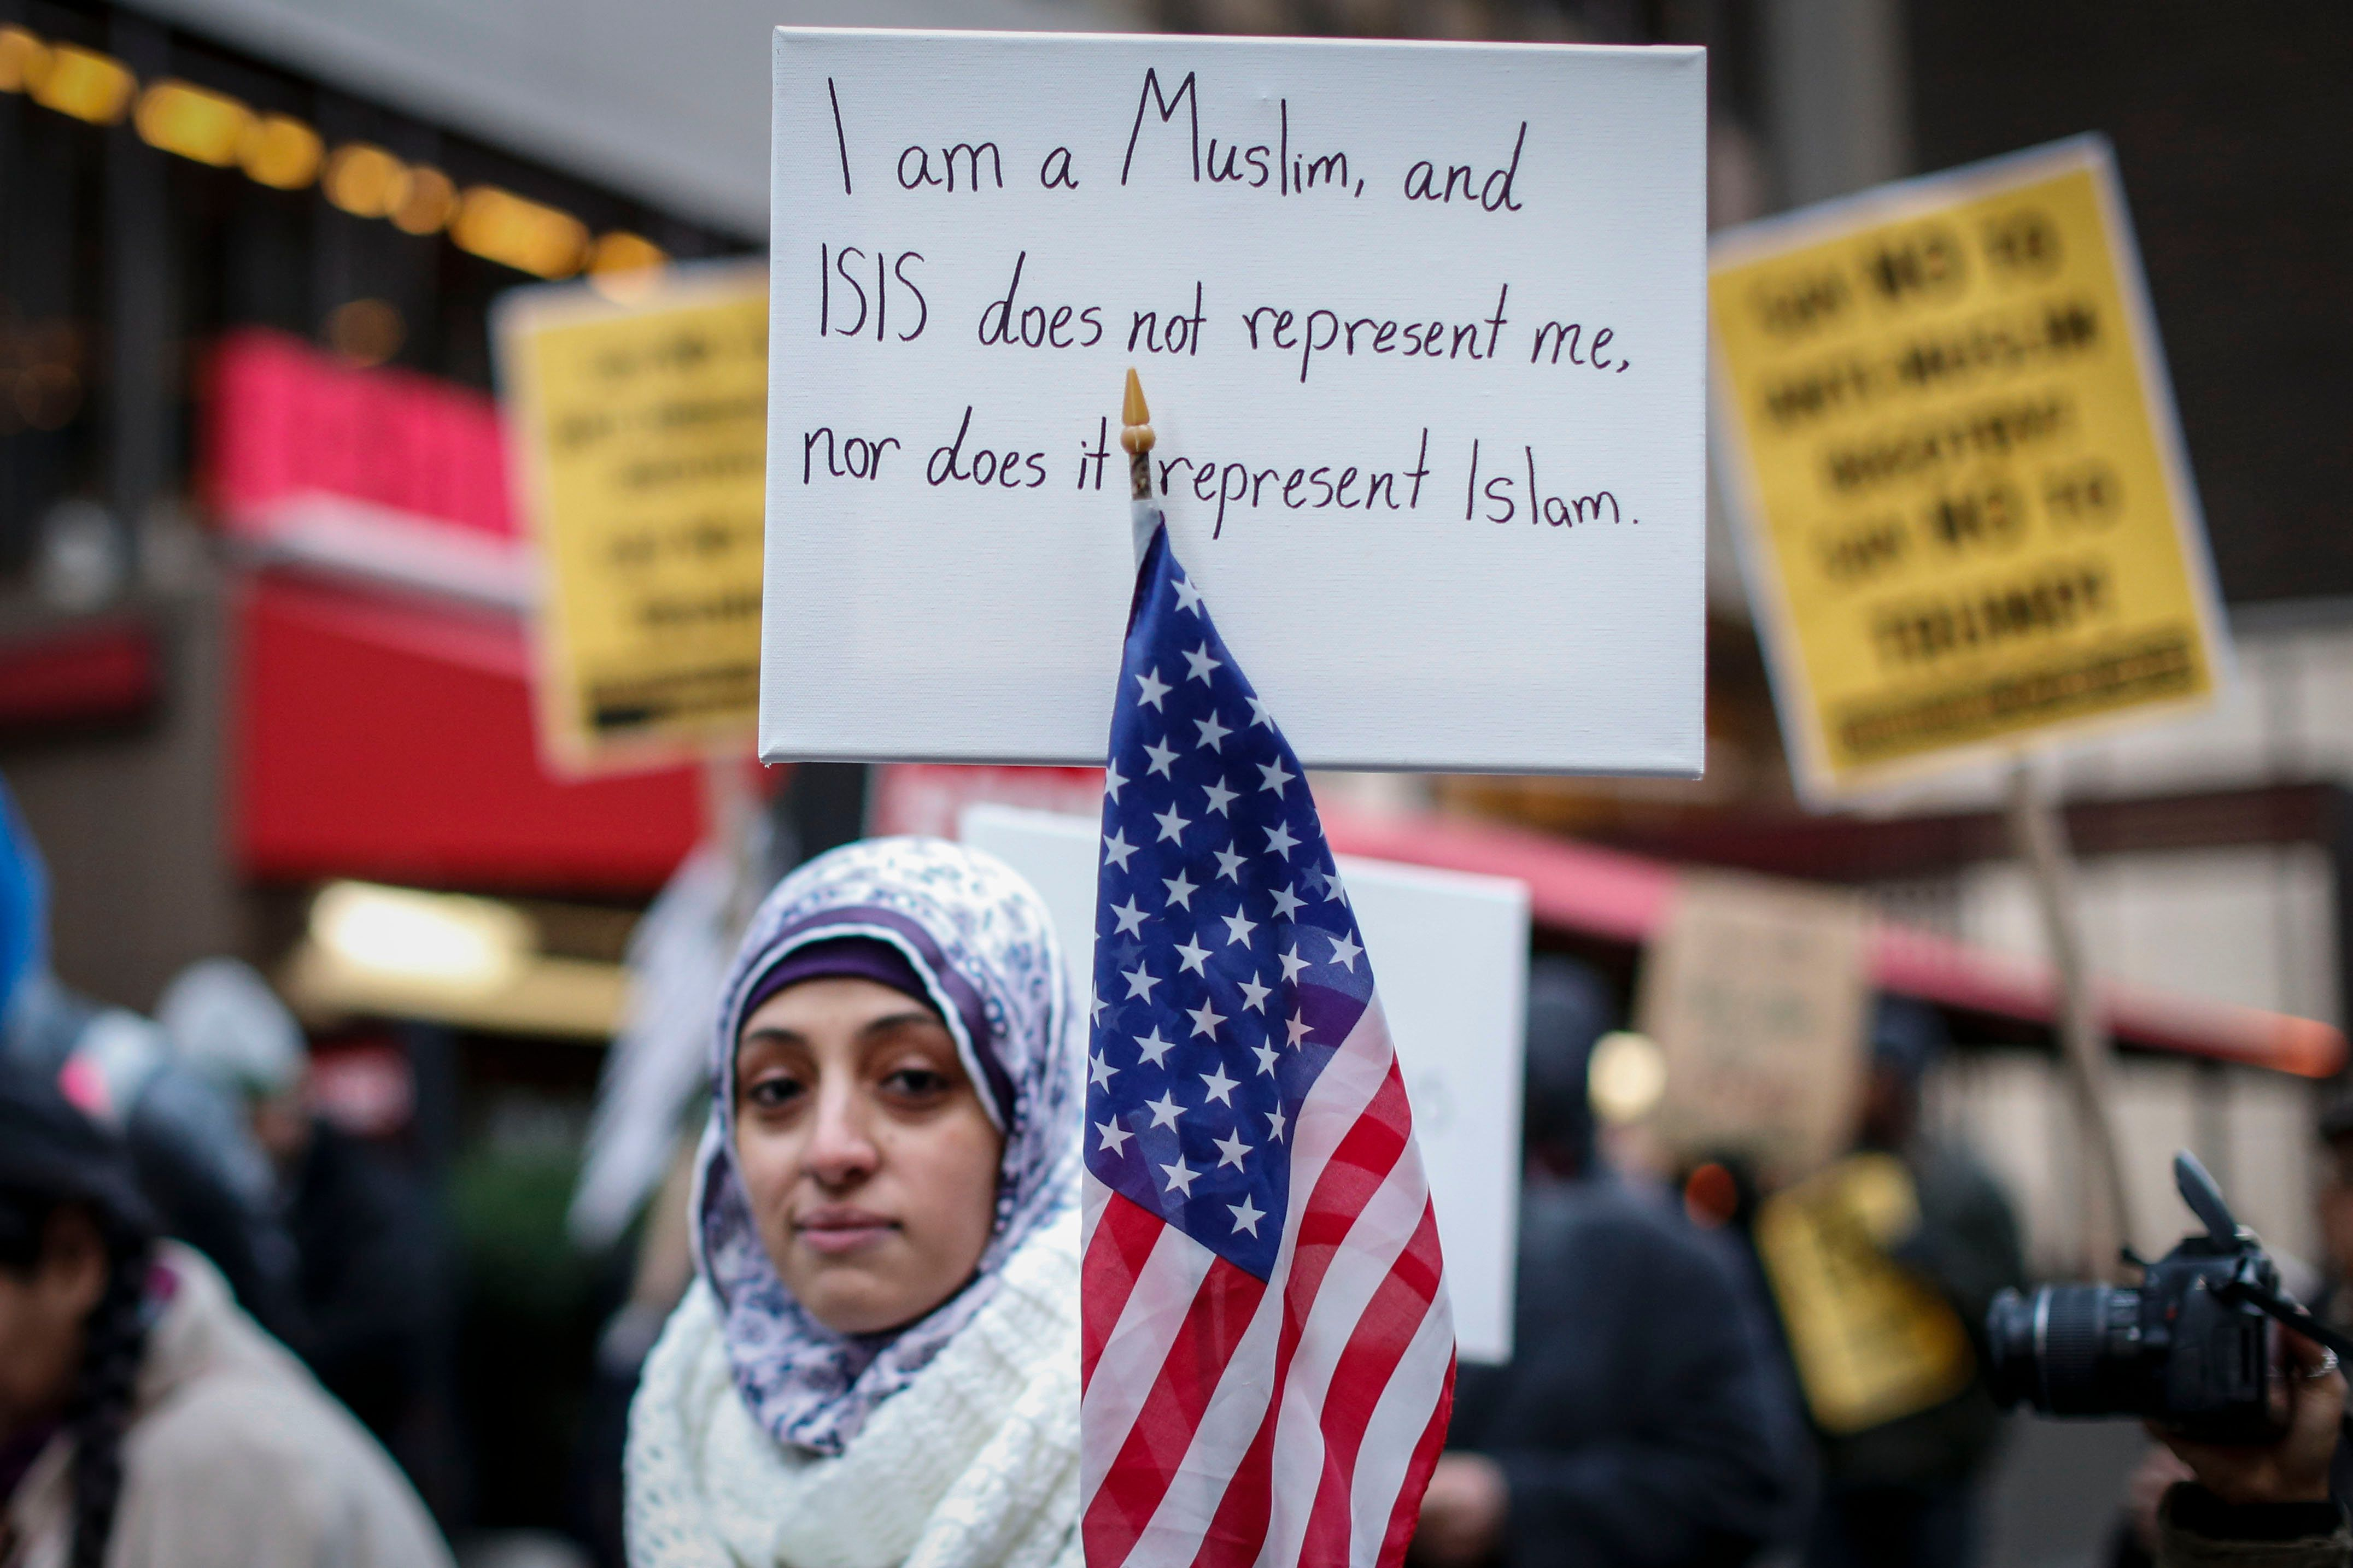 A Muslim woman holds a poster during a protest  against Donald Trump on December 20, 2015 in New York. Republican presidential hopeful Donald Trump proposed a call for a ban on Muslims entering the United States. AFP PHOTO/KENA BETANCUR / AFP / KENA BETANCUR        (Photo credit should read KENA BETANCUR/AFP/Getty Images)